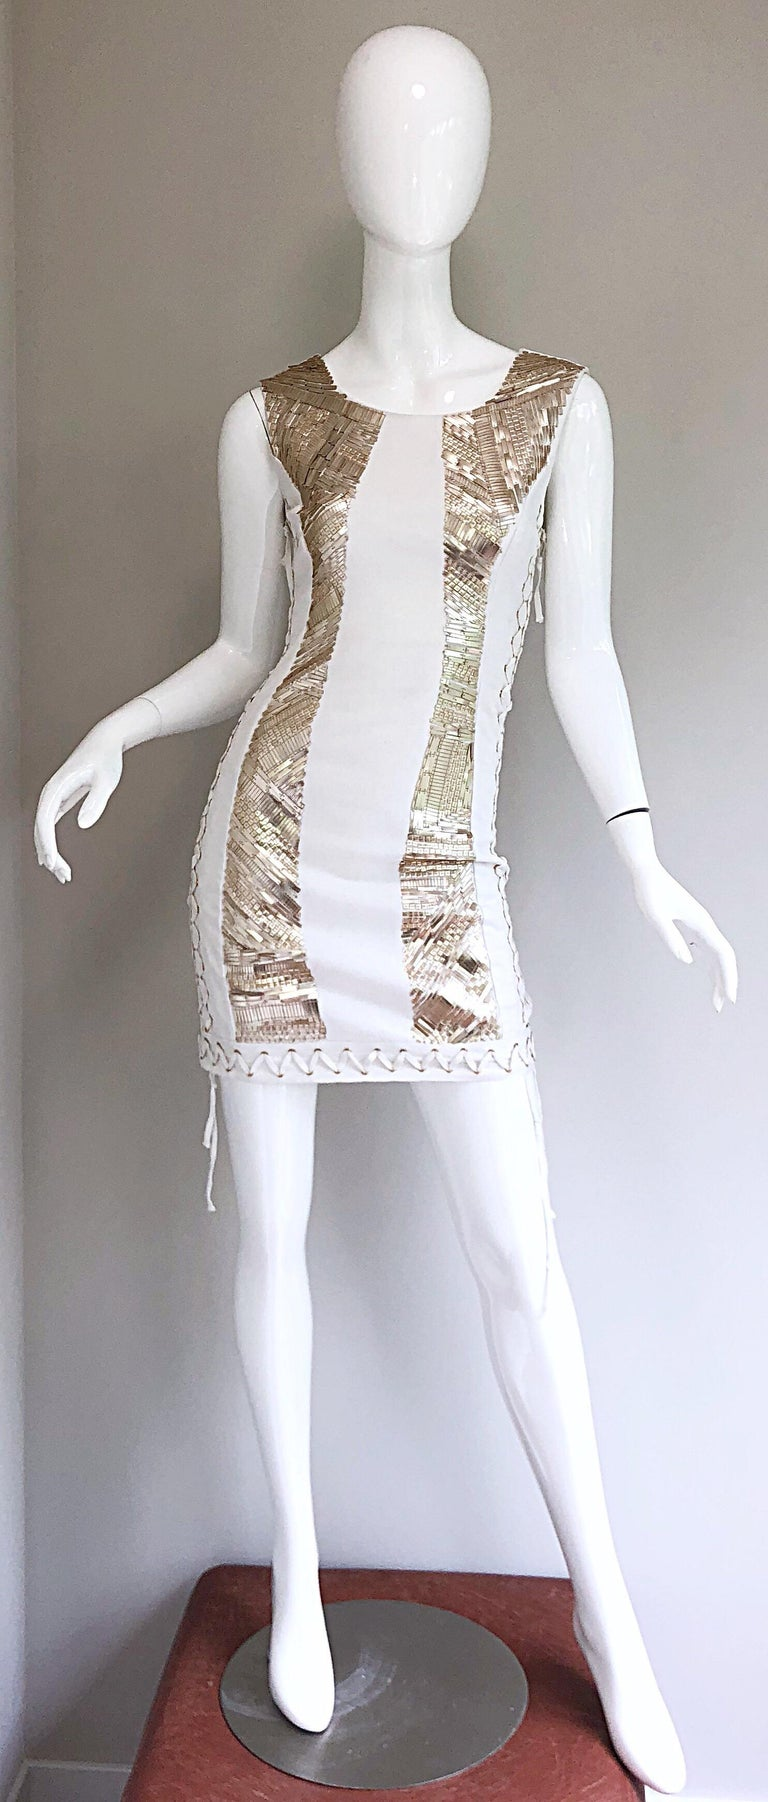 Sexy new with original store tags PIERRE BALMAIN white and gold sequined lace-up mini dress! Features thousands of muted gold rectangle sequin beads o each side of the front. Sturdy cotton (95%) and elastane (5%) fabric is flattering, comfortable,